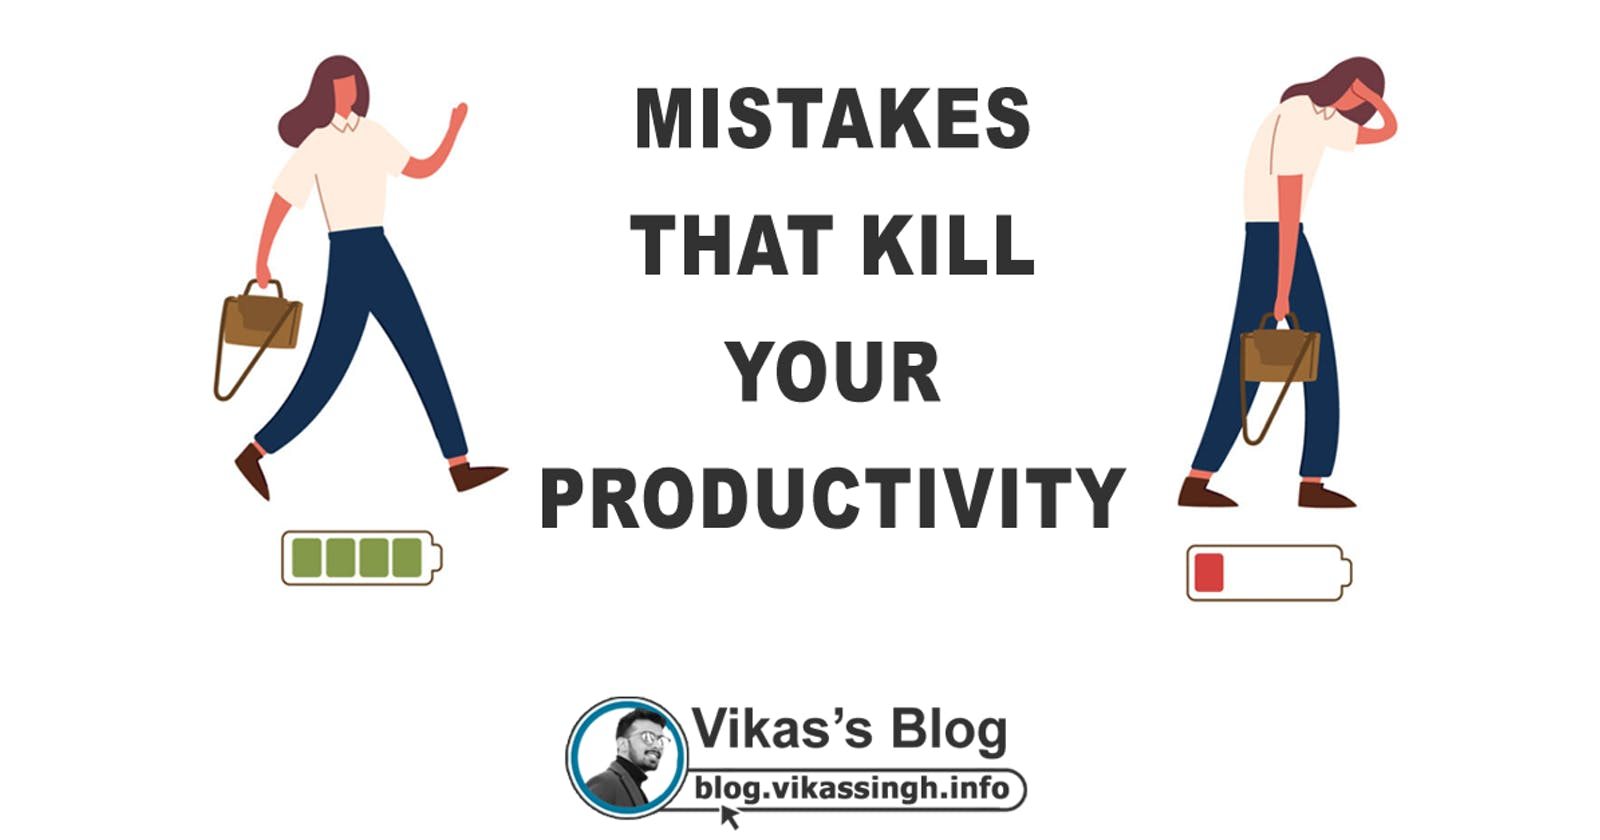 Mistakes That Kill Your Productivity